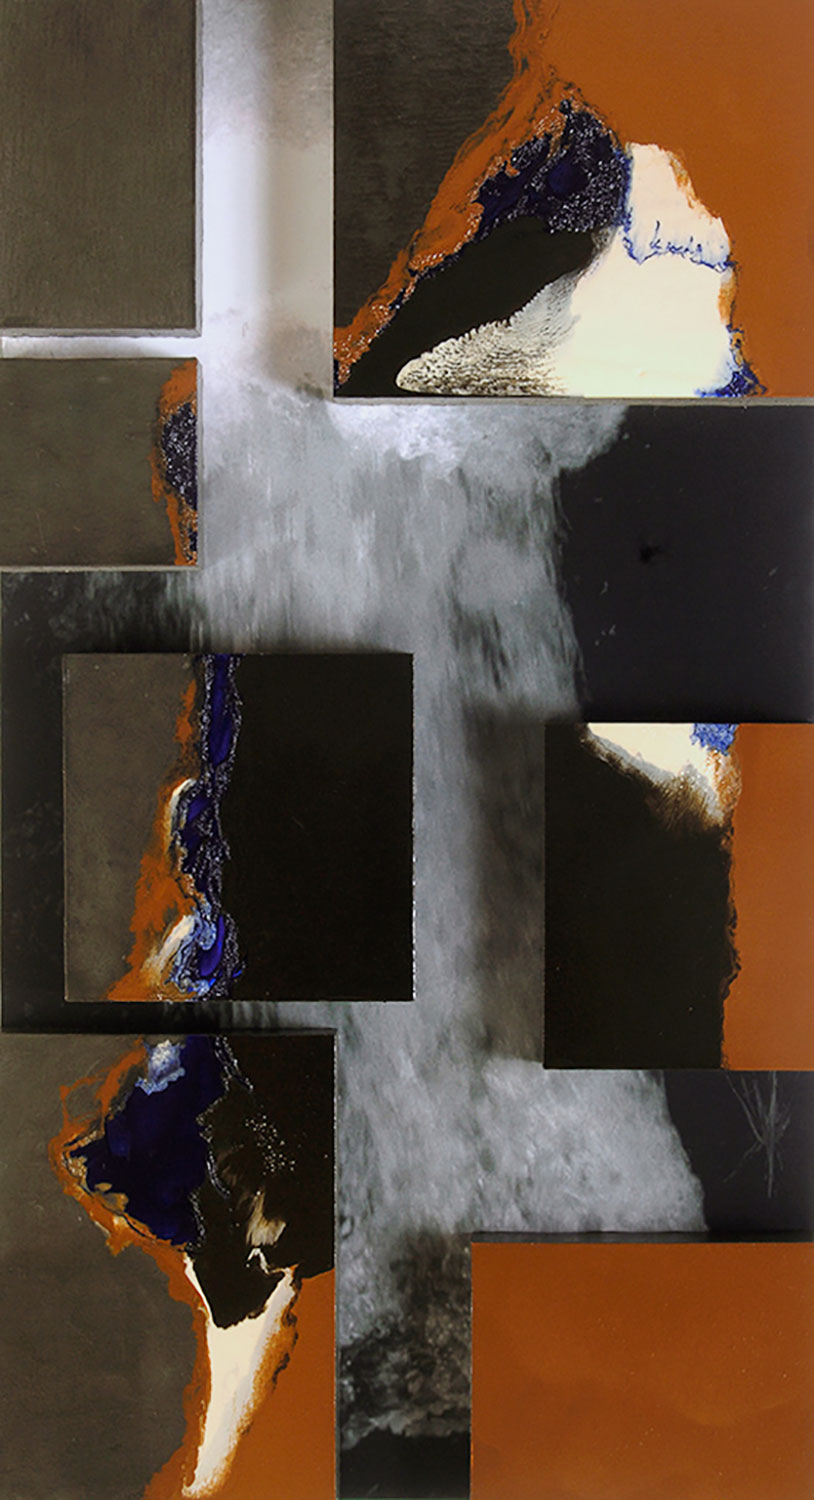 Mersion Vlll, 2006, Oil and photo on panel, 24x48""